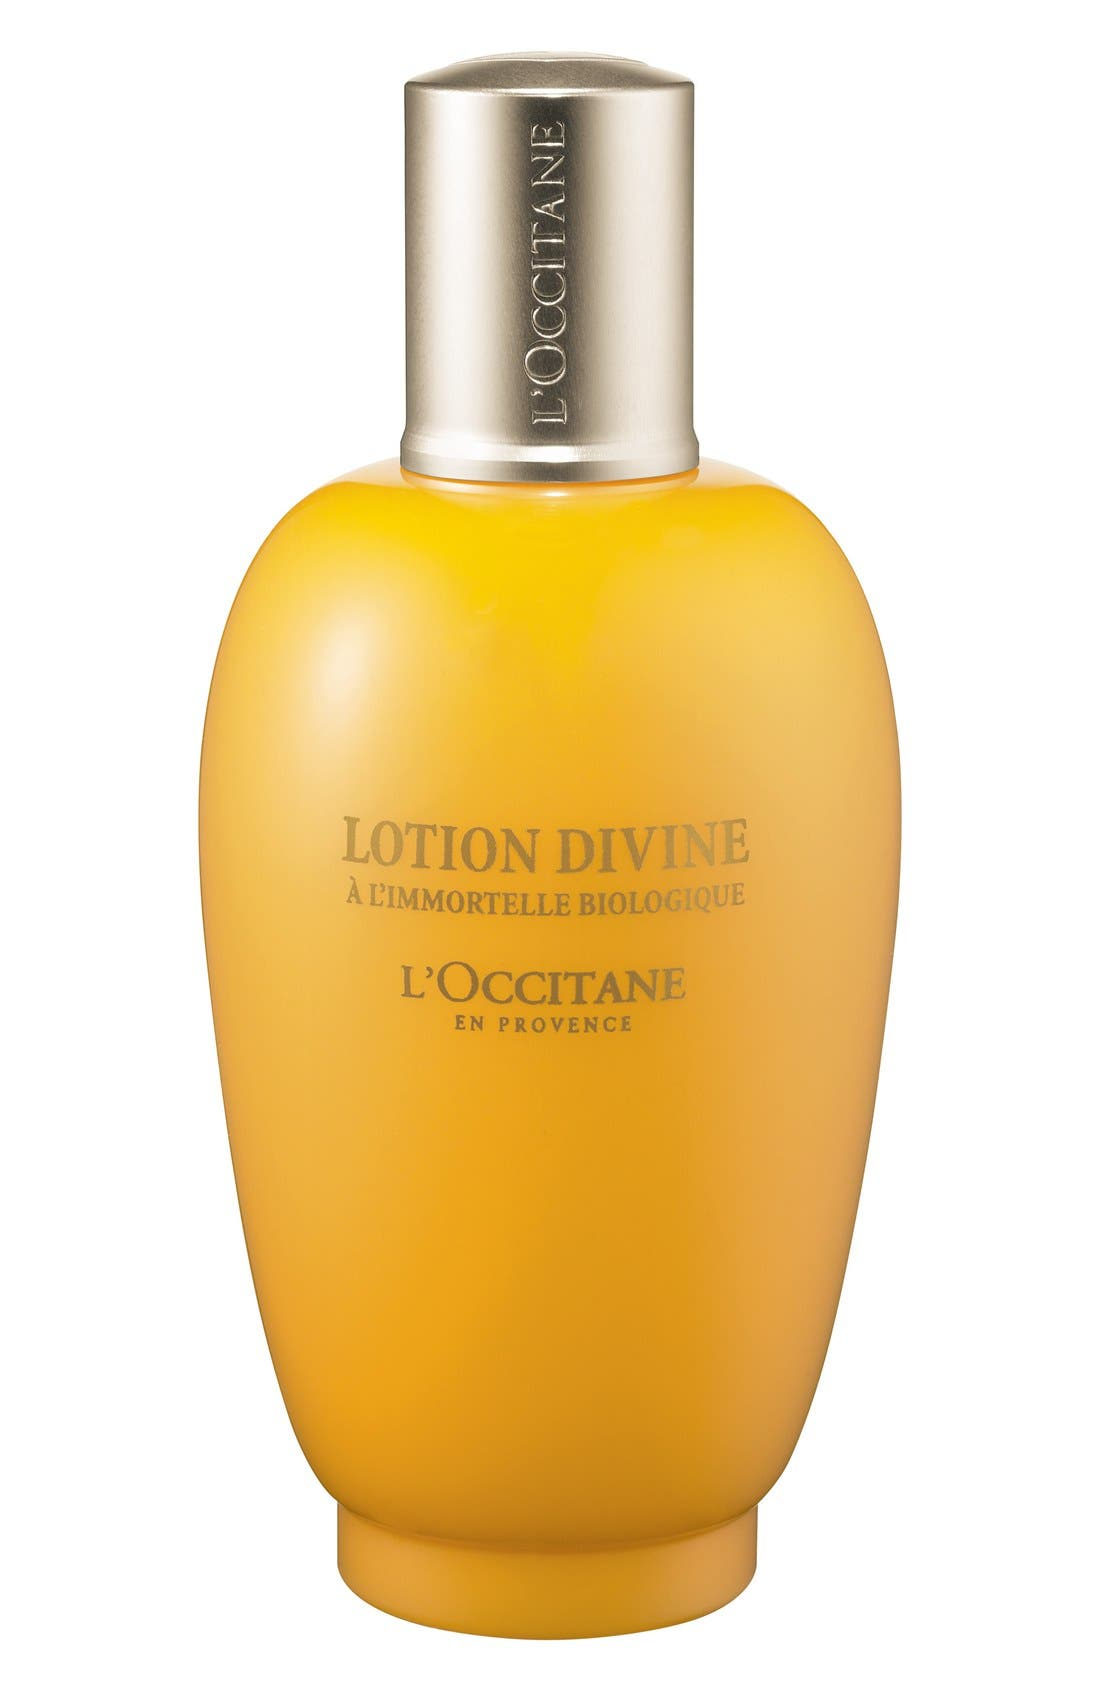 L'Occitane 'Immortelle Divine' Prep Lotion